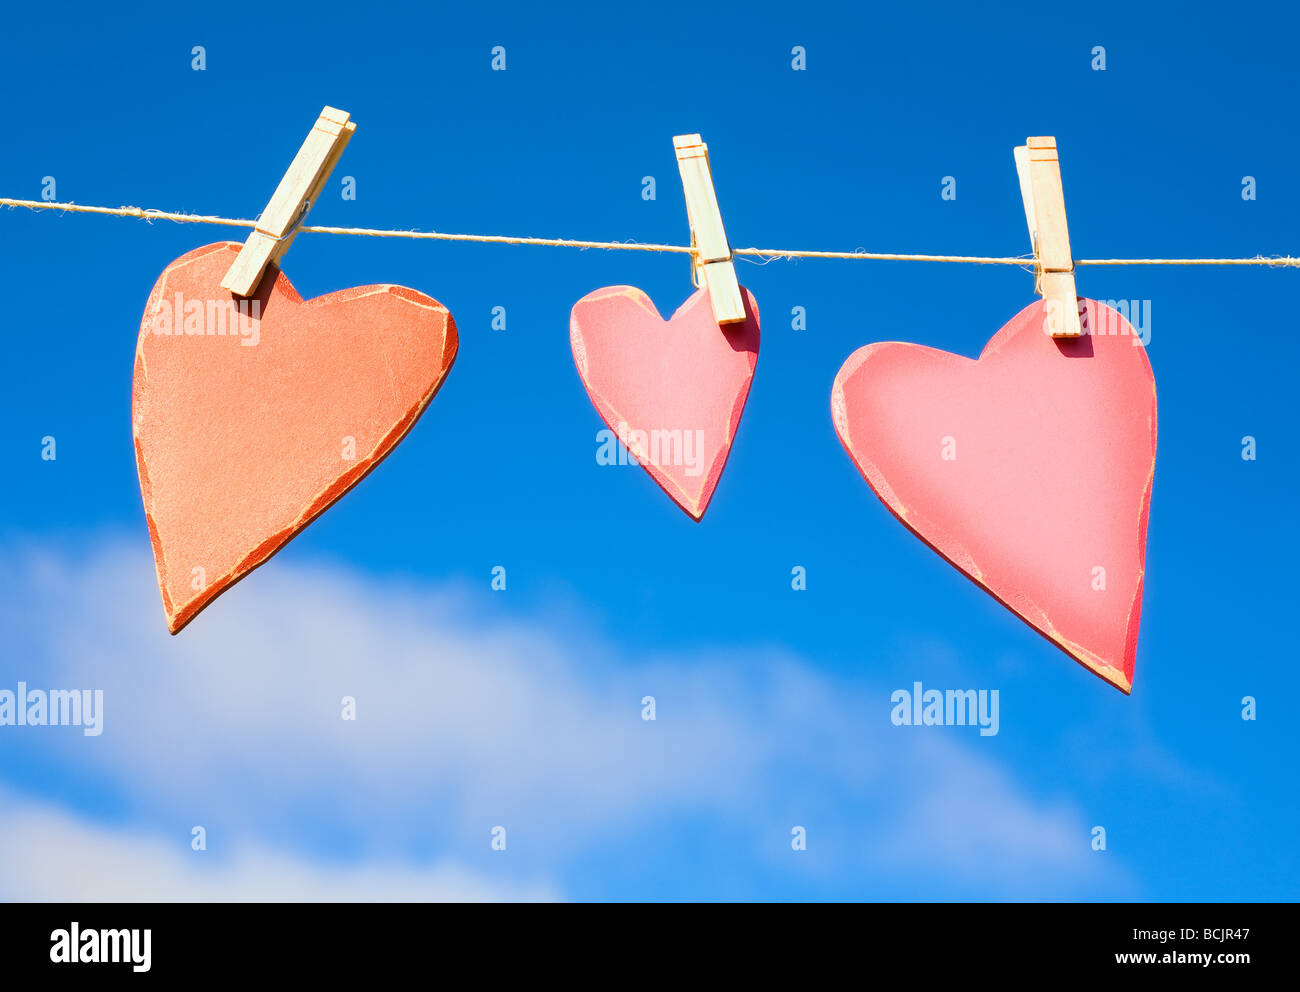 Three hearts on a washing line - Stock Image